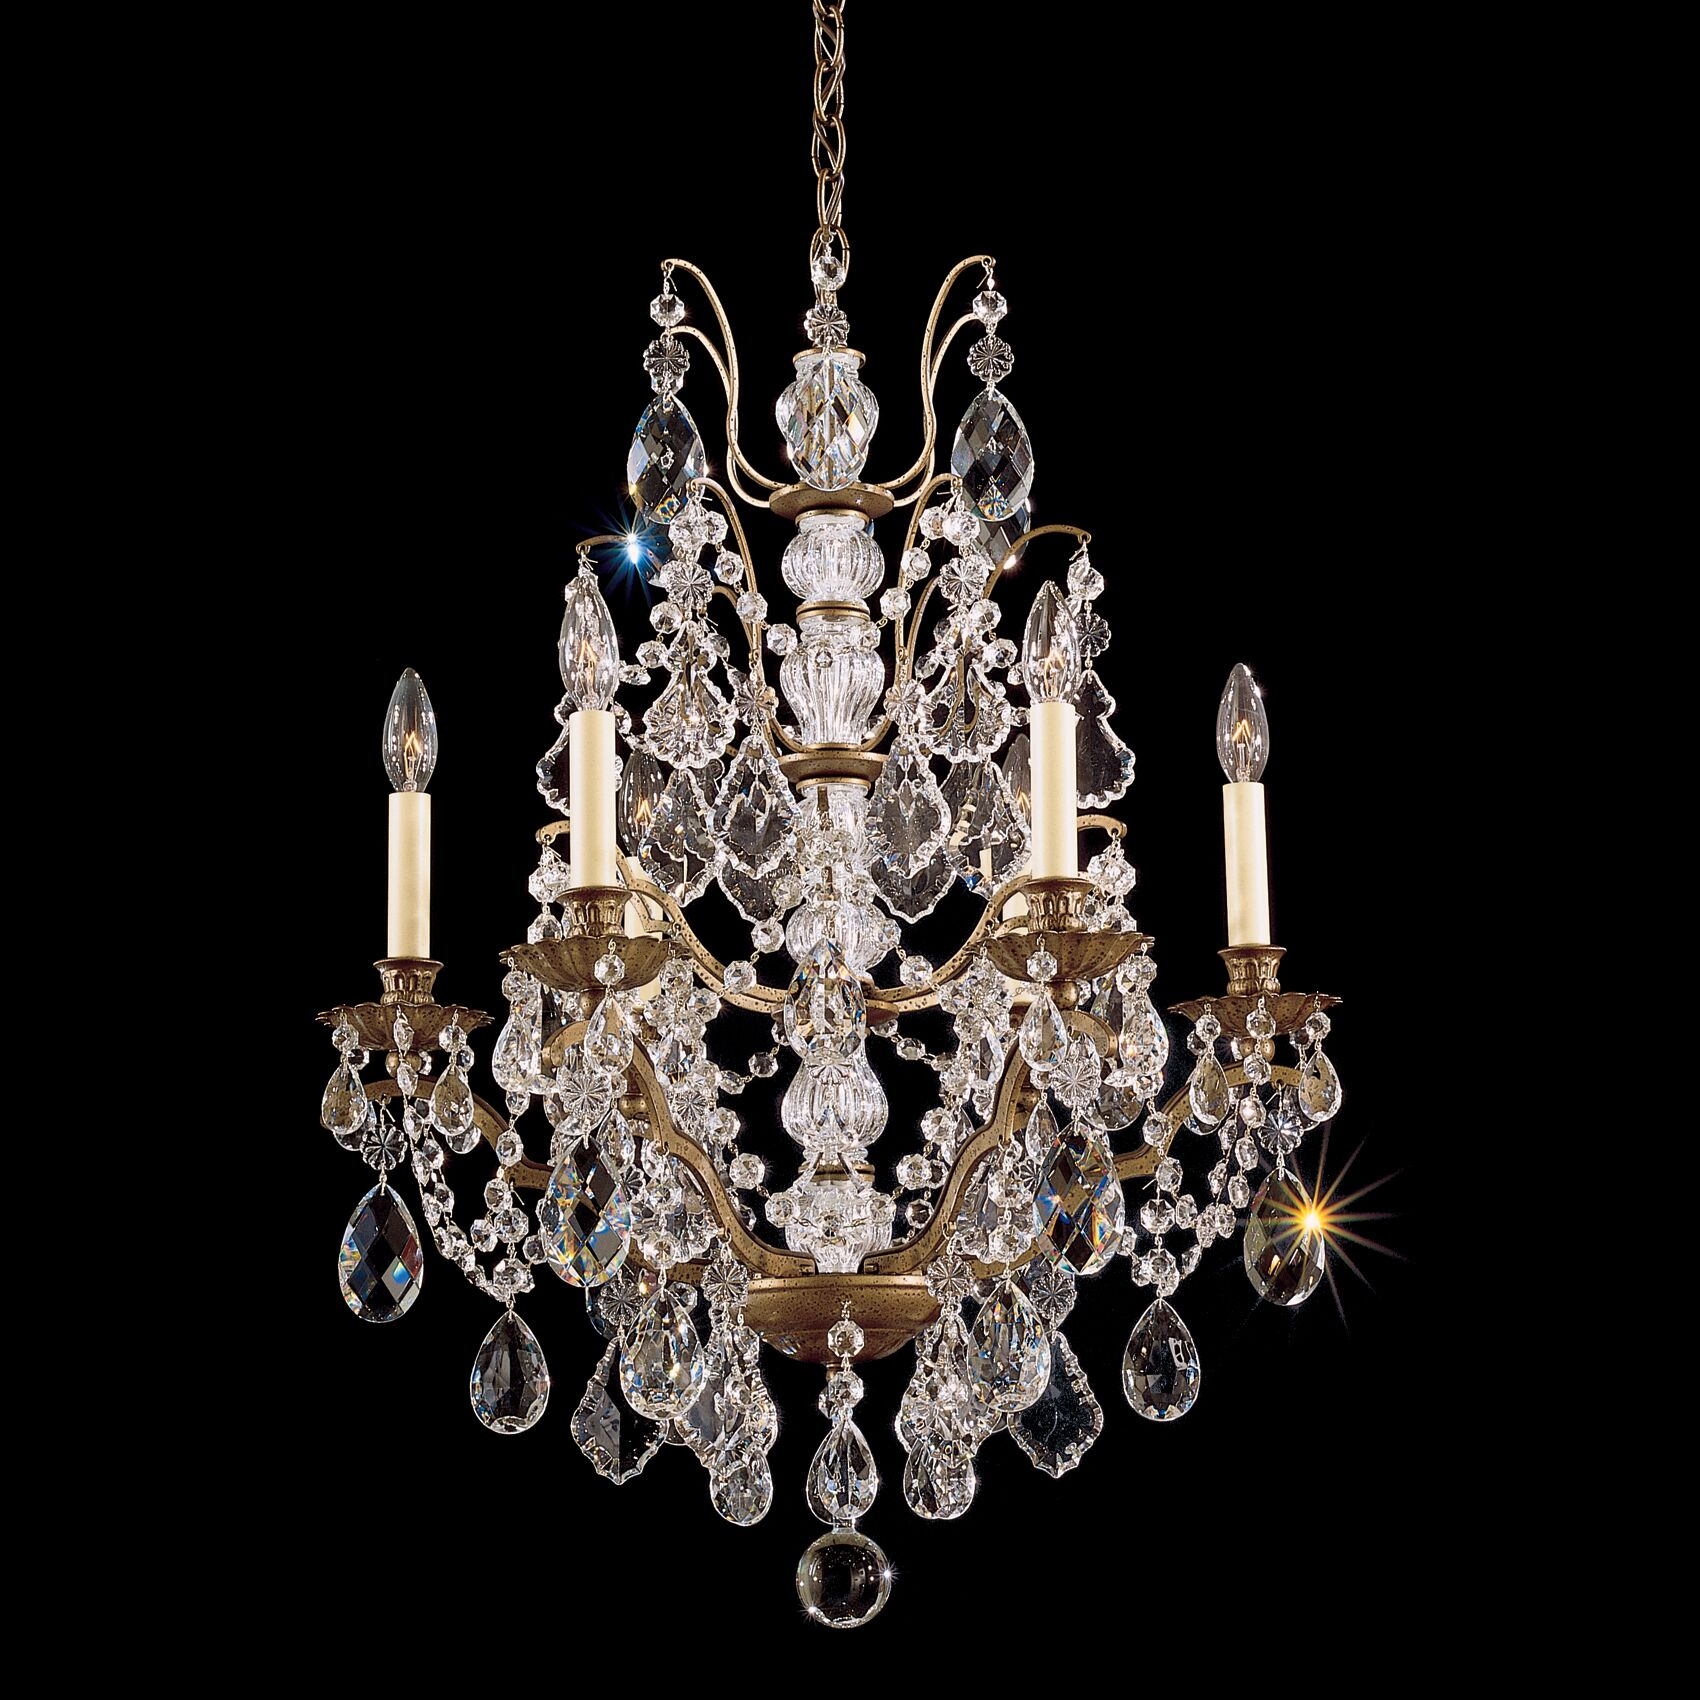 Bordeaux 6-Light Chandelier Crystal Color: Legacy Collection Crystal Clear, Finish: Heirloom Gold